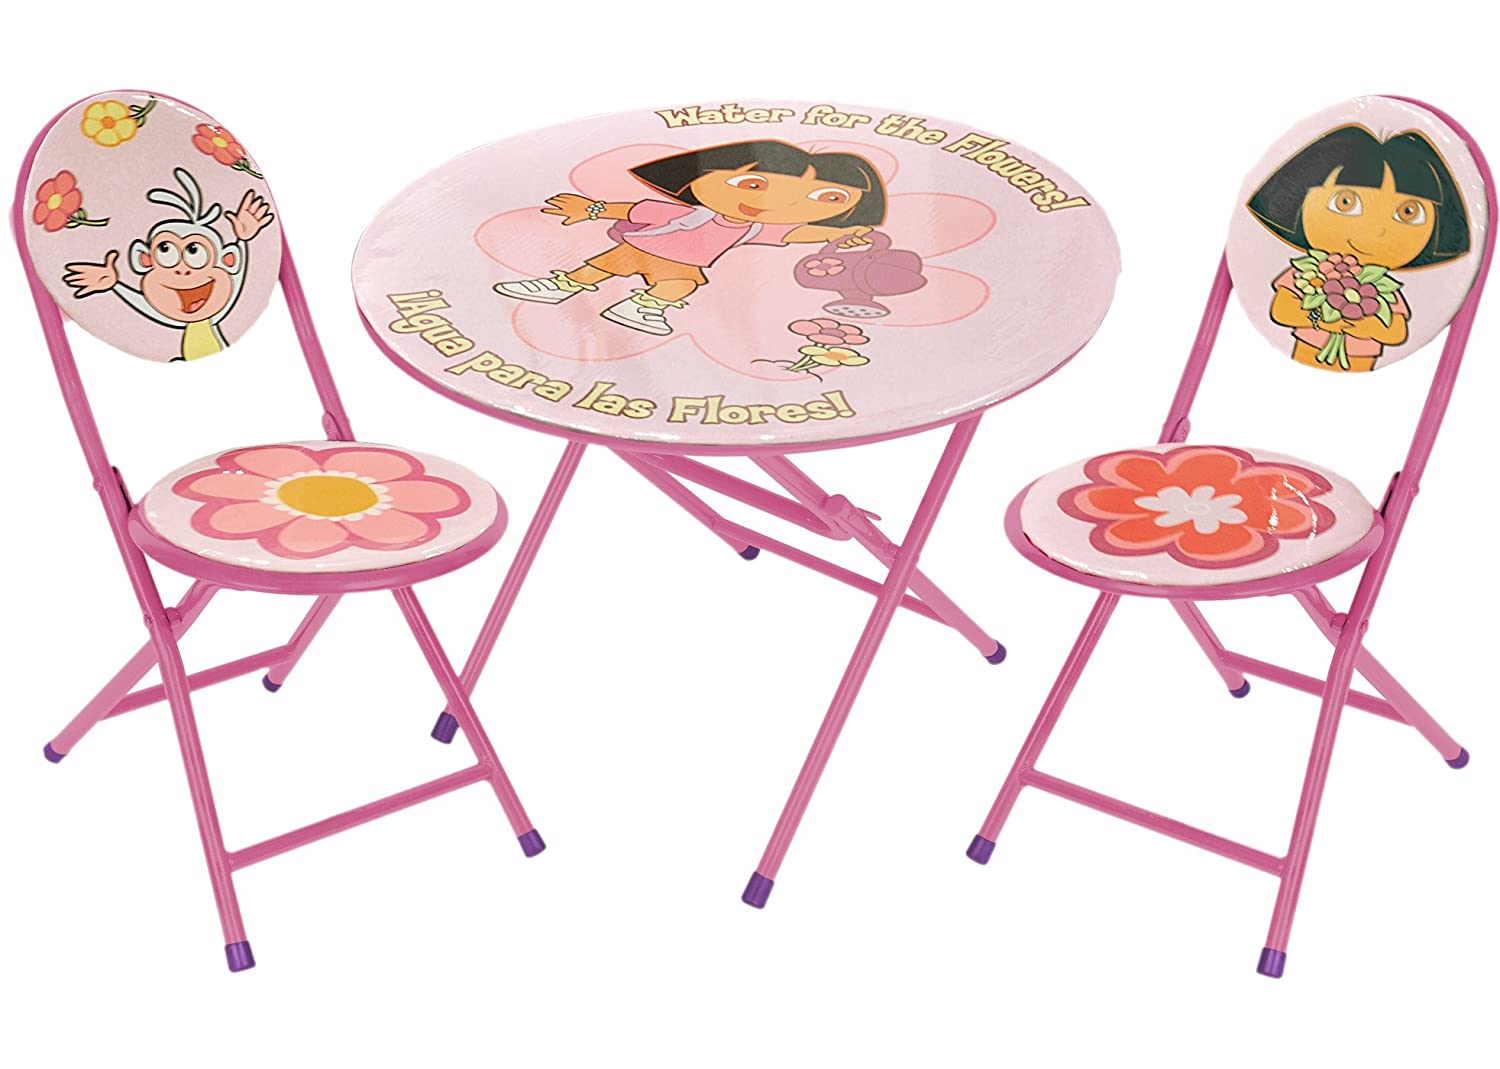 Nickelodeon Dora the Explorer 3-Piece Round Table and Chair Set Idea Nuova - LA N500451